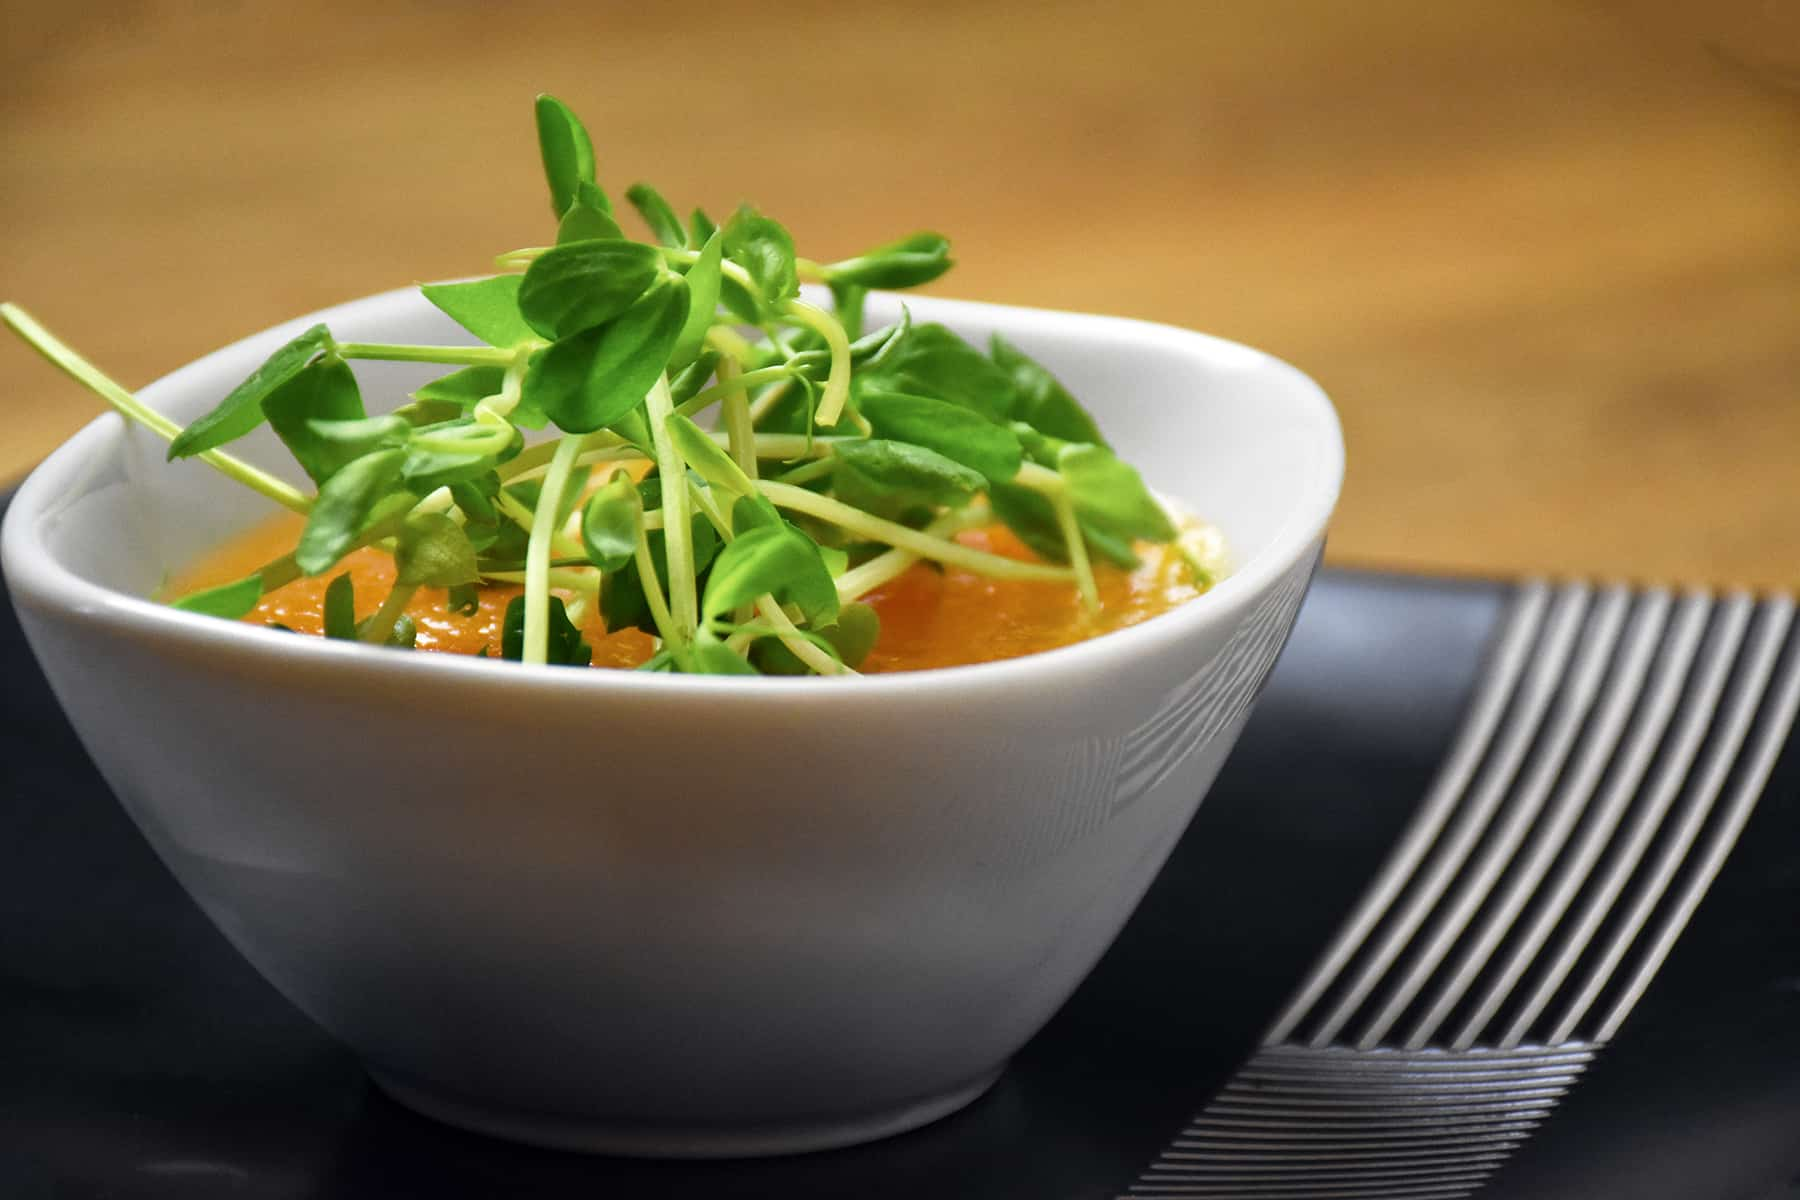 Chilled Cantaloupe Soup with Pea Shoots - Amazing Food Made Easy